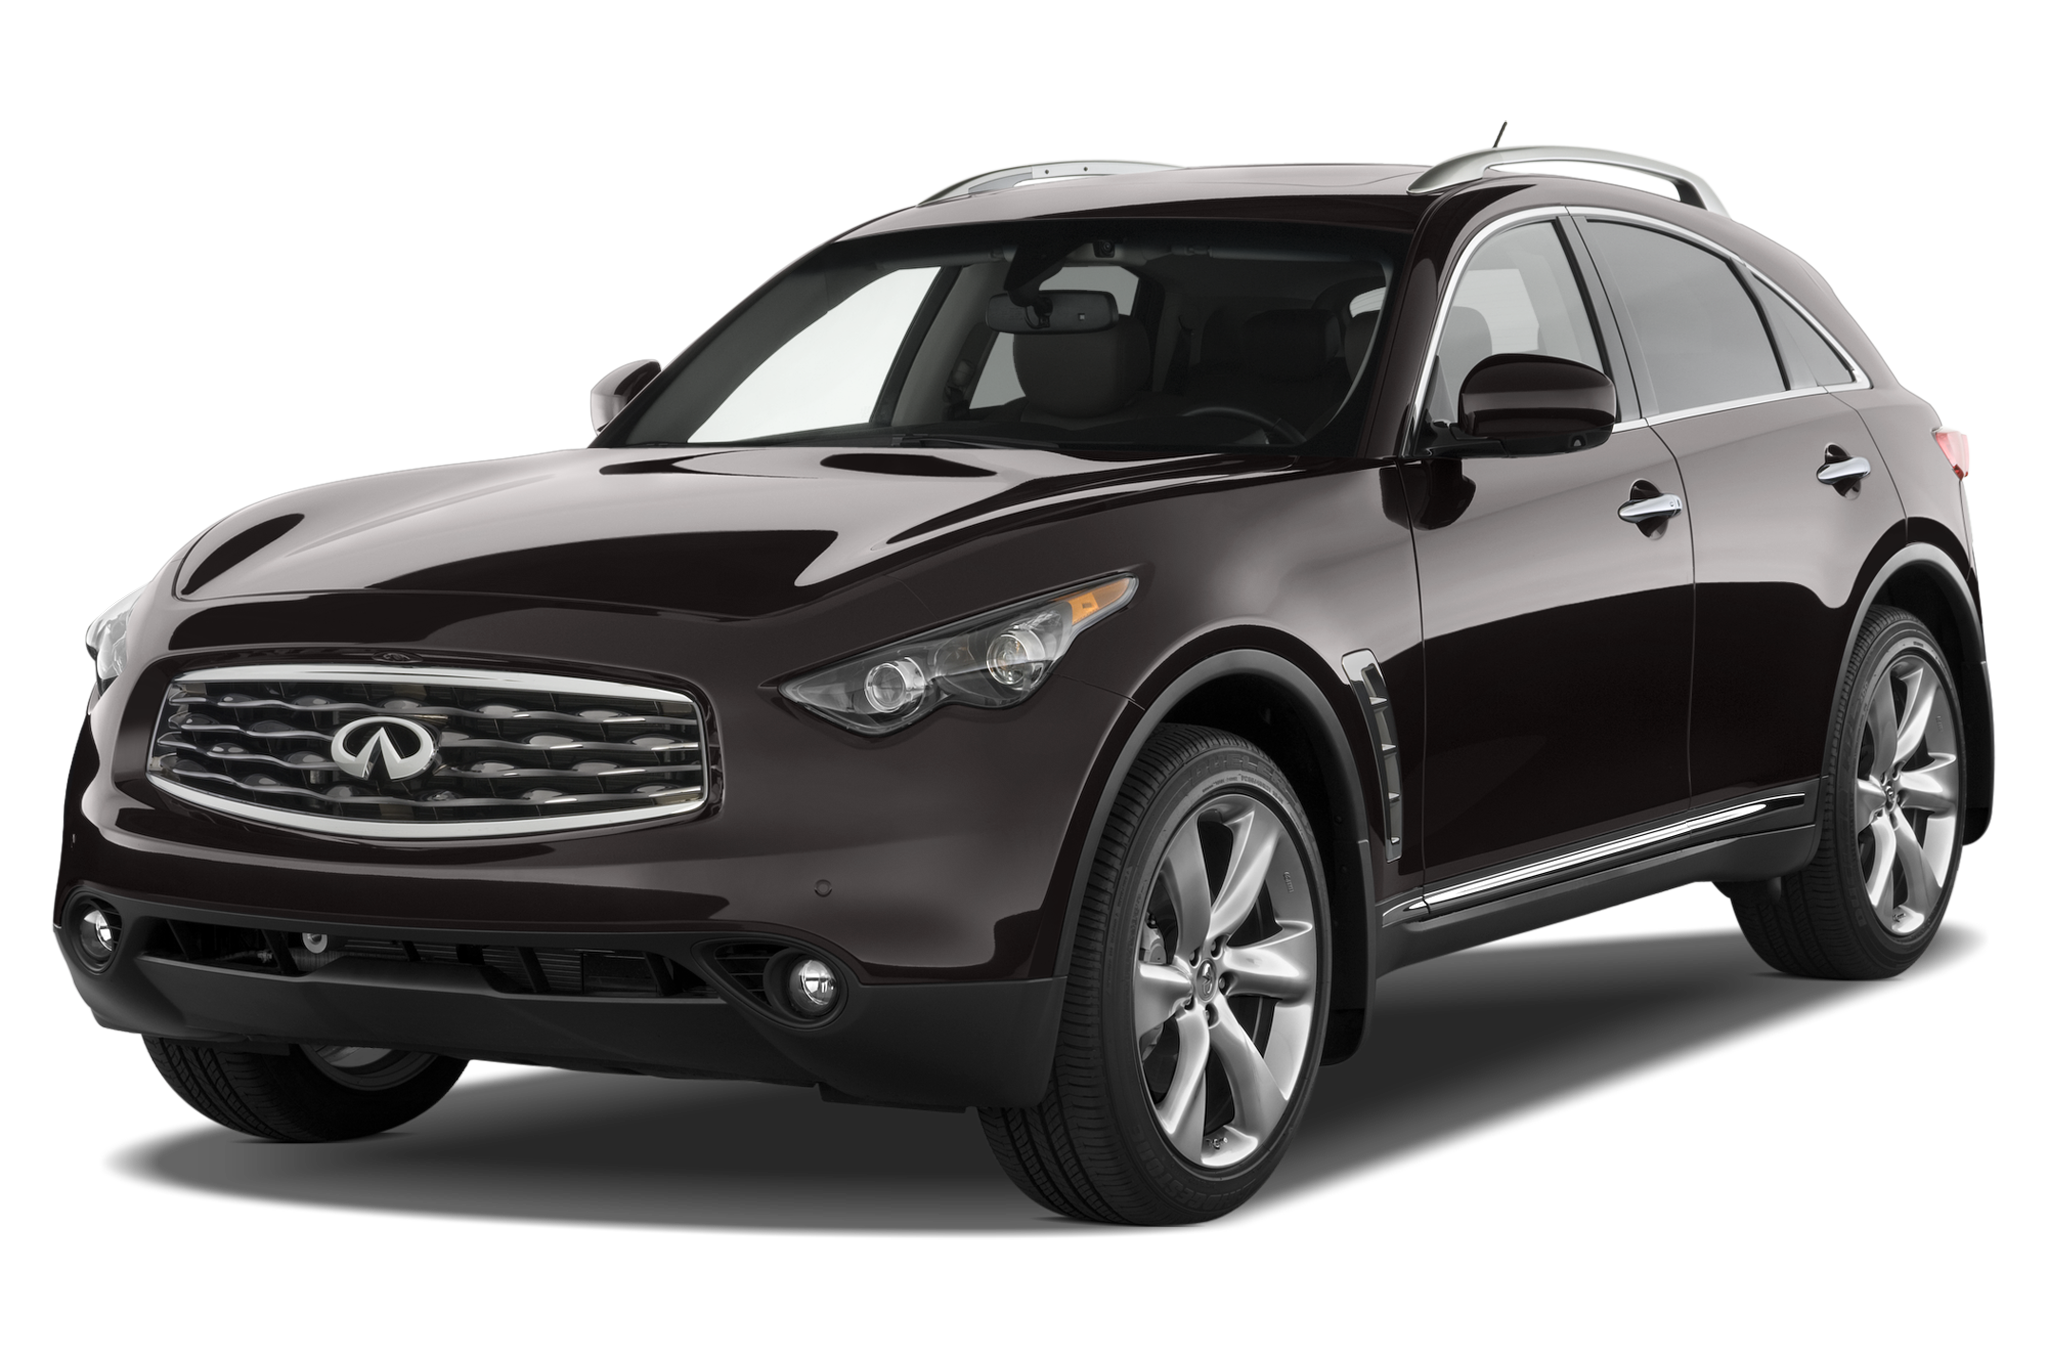 2019 Infiniti FX Limited Edition photo - 2